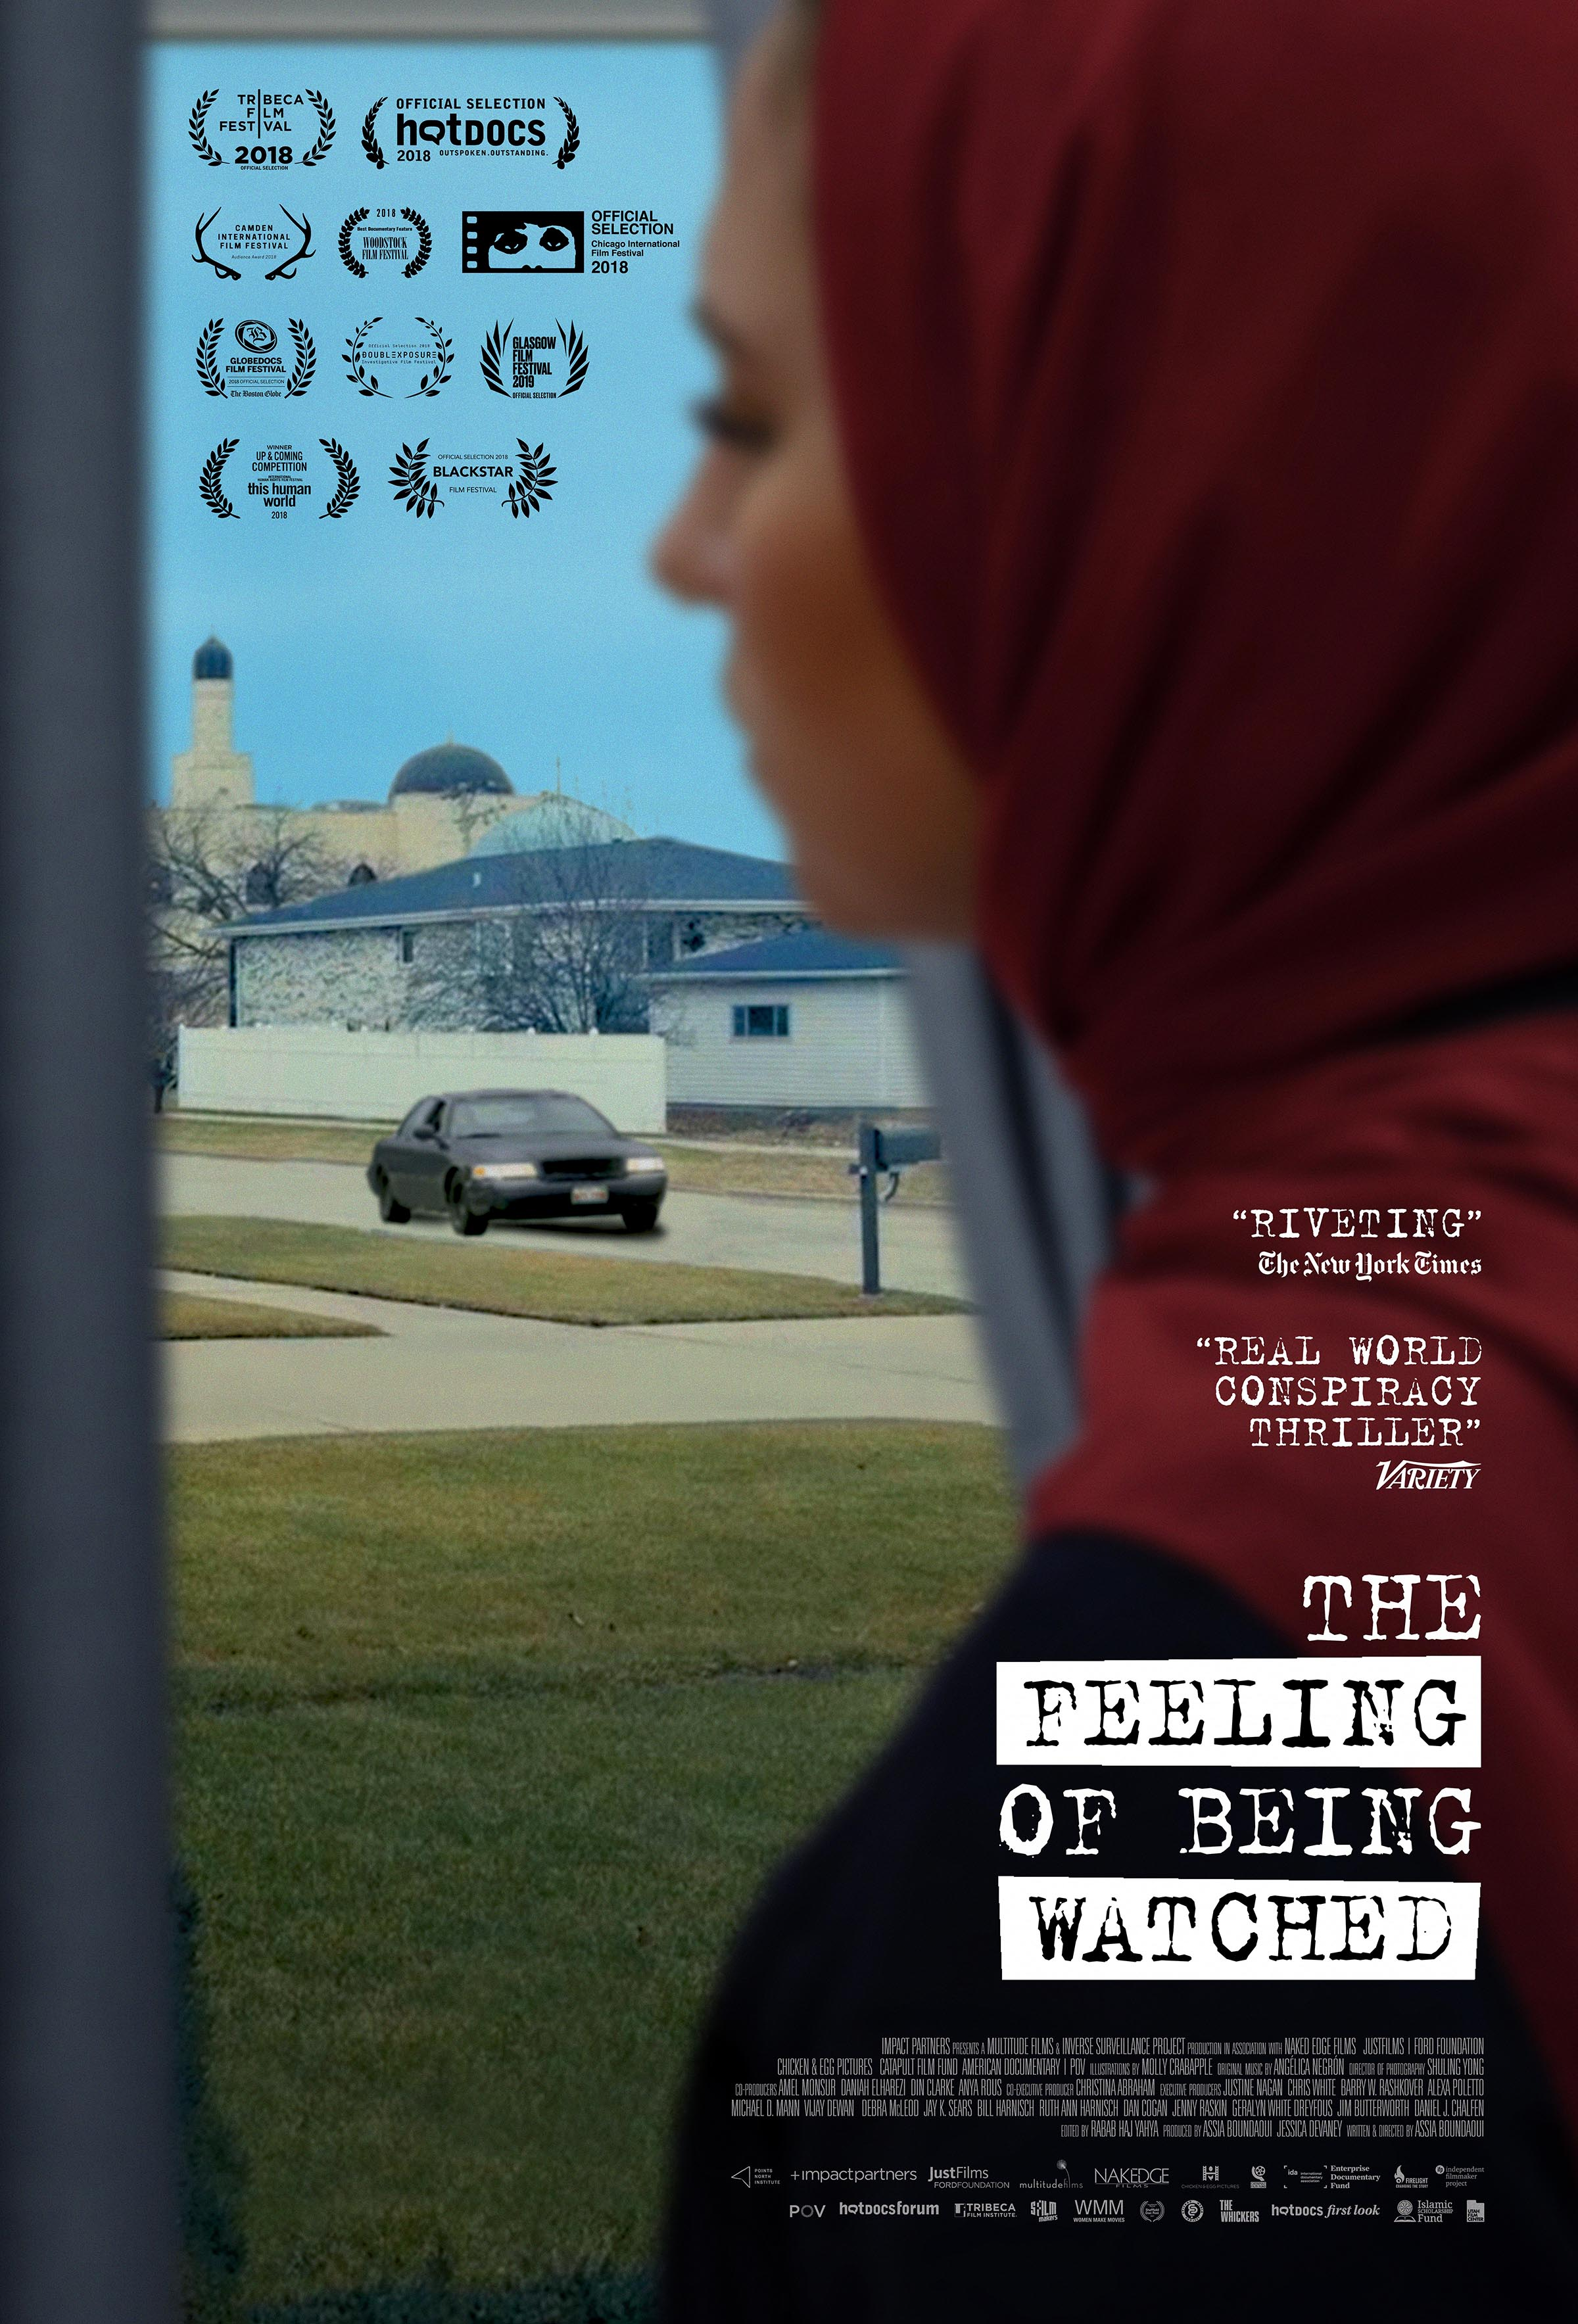 The Feeling of Being Watched Poster_for web.jpg